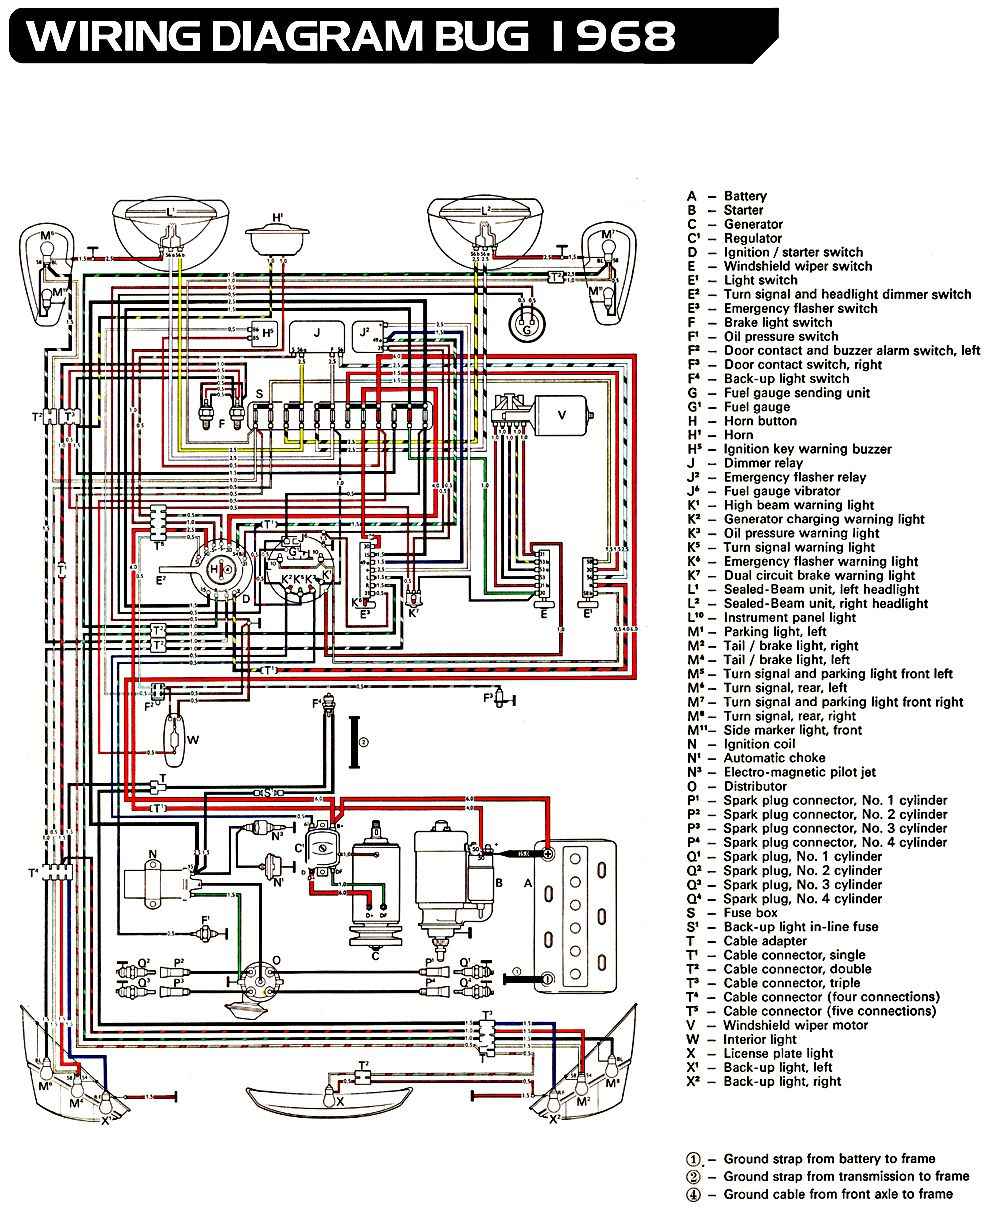 3a1908112d3826270ed5e3be362292bf vw bug ignition wiring diagram 73 vw wiring diagram free vw type 3 wiring harness at aneh.co